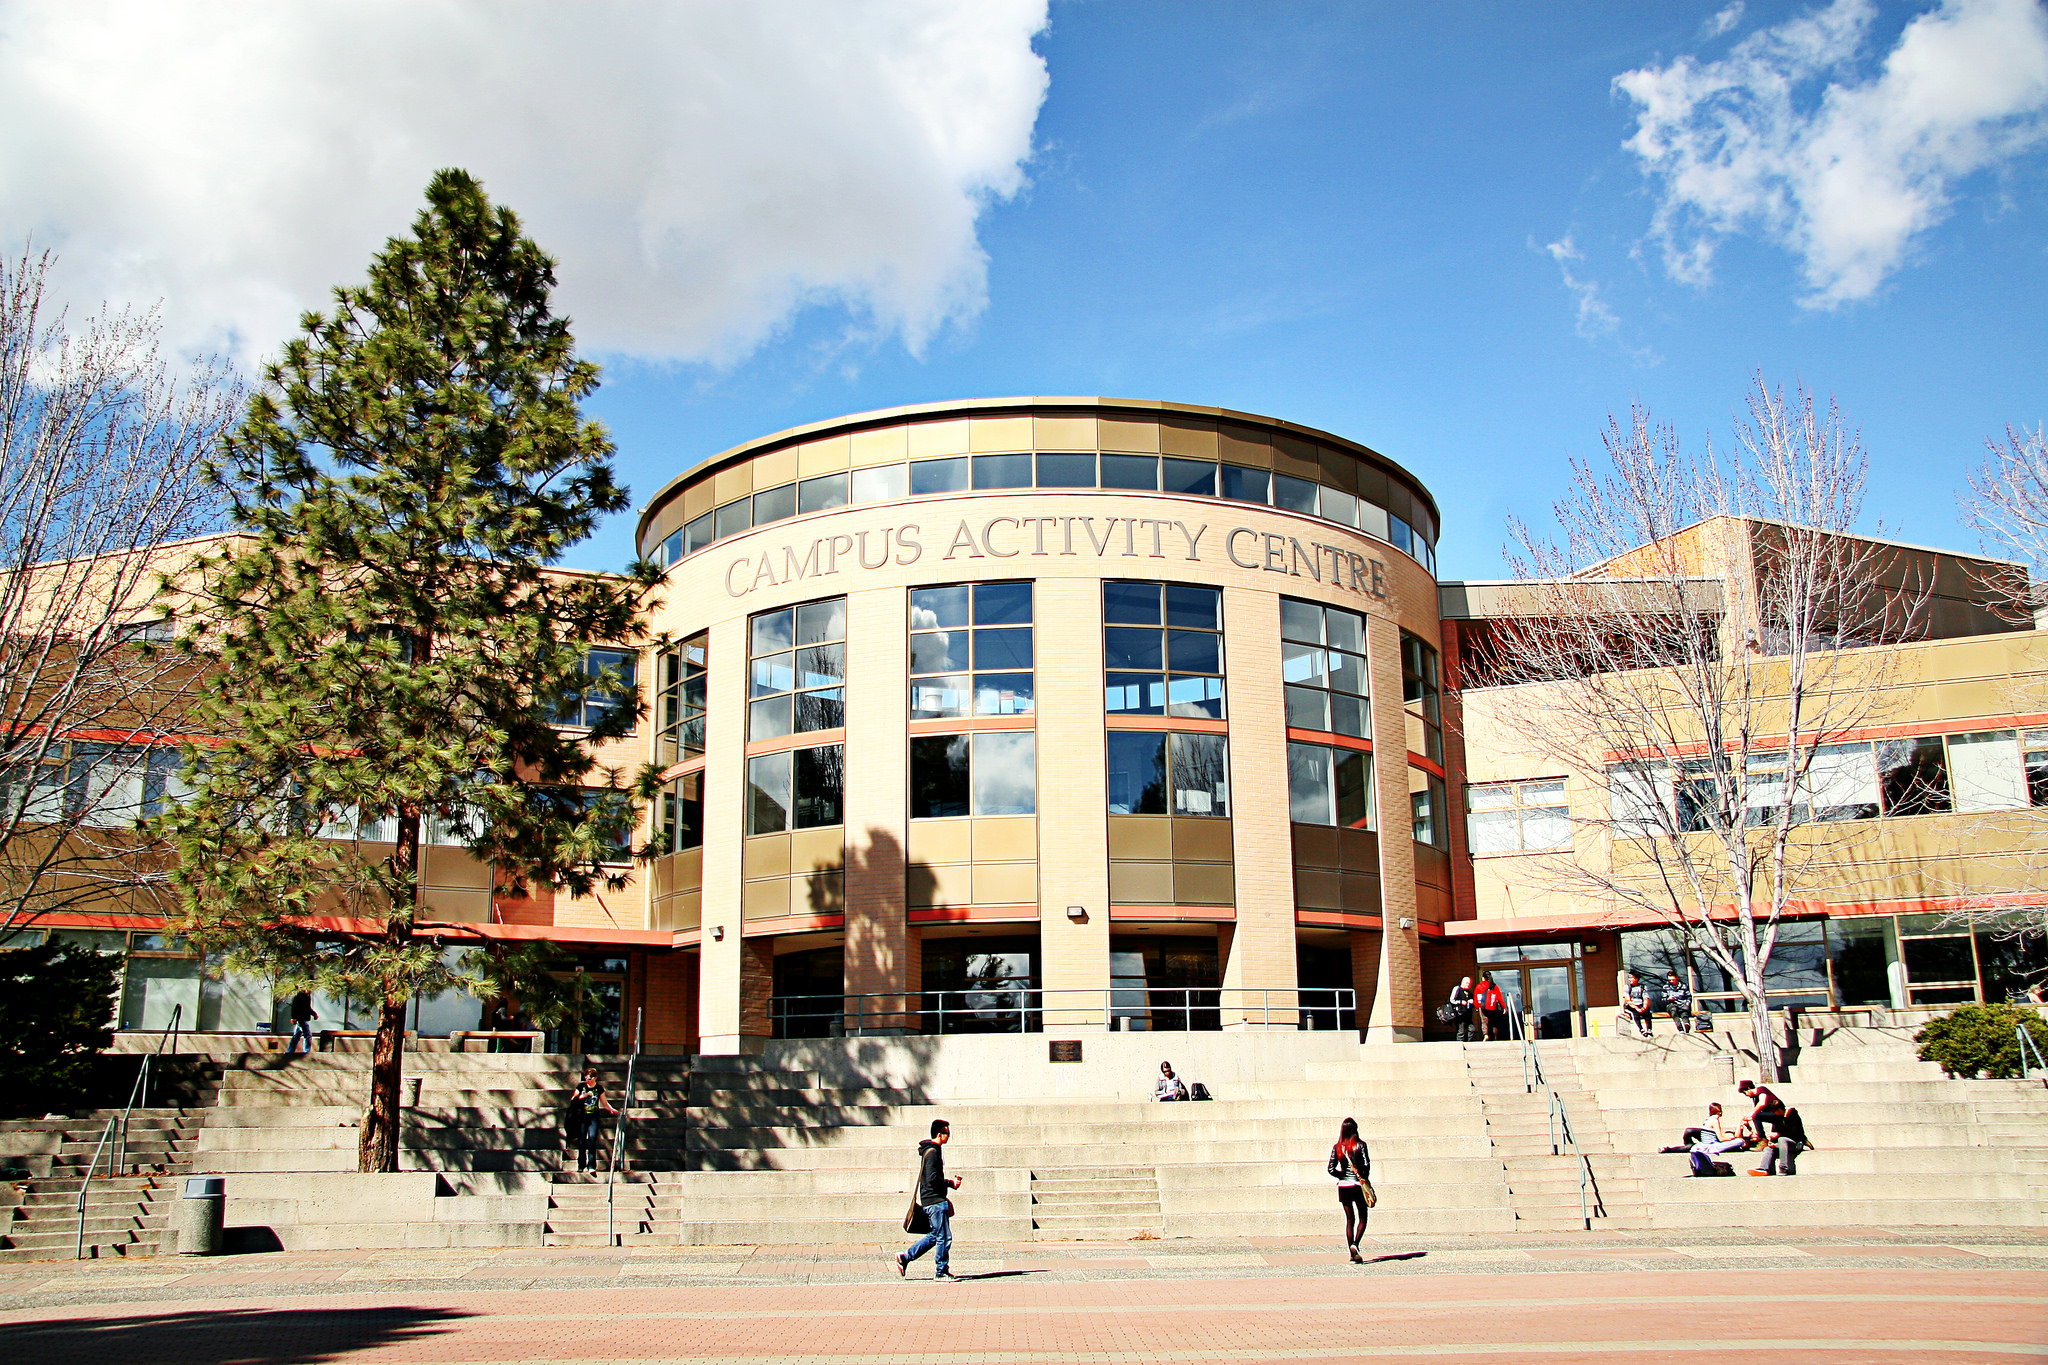 Exterior of Campus Activity Centre building at TRU